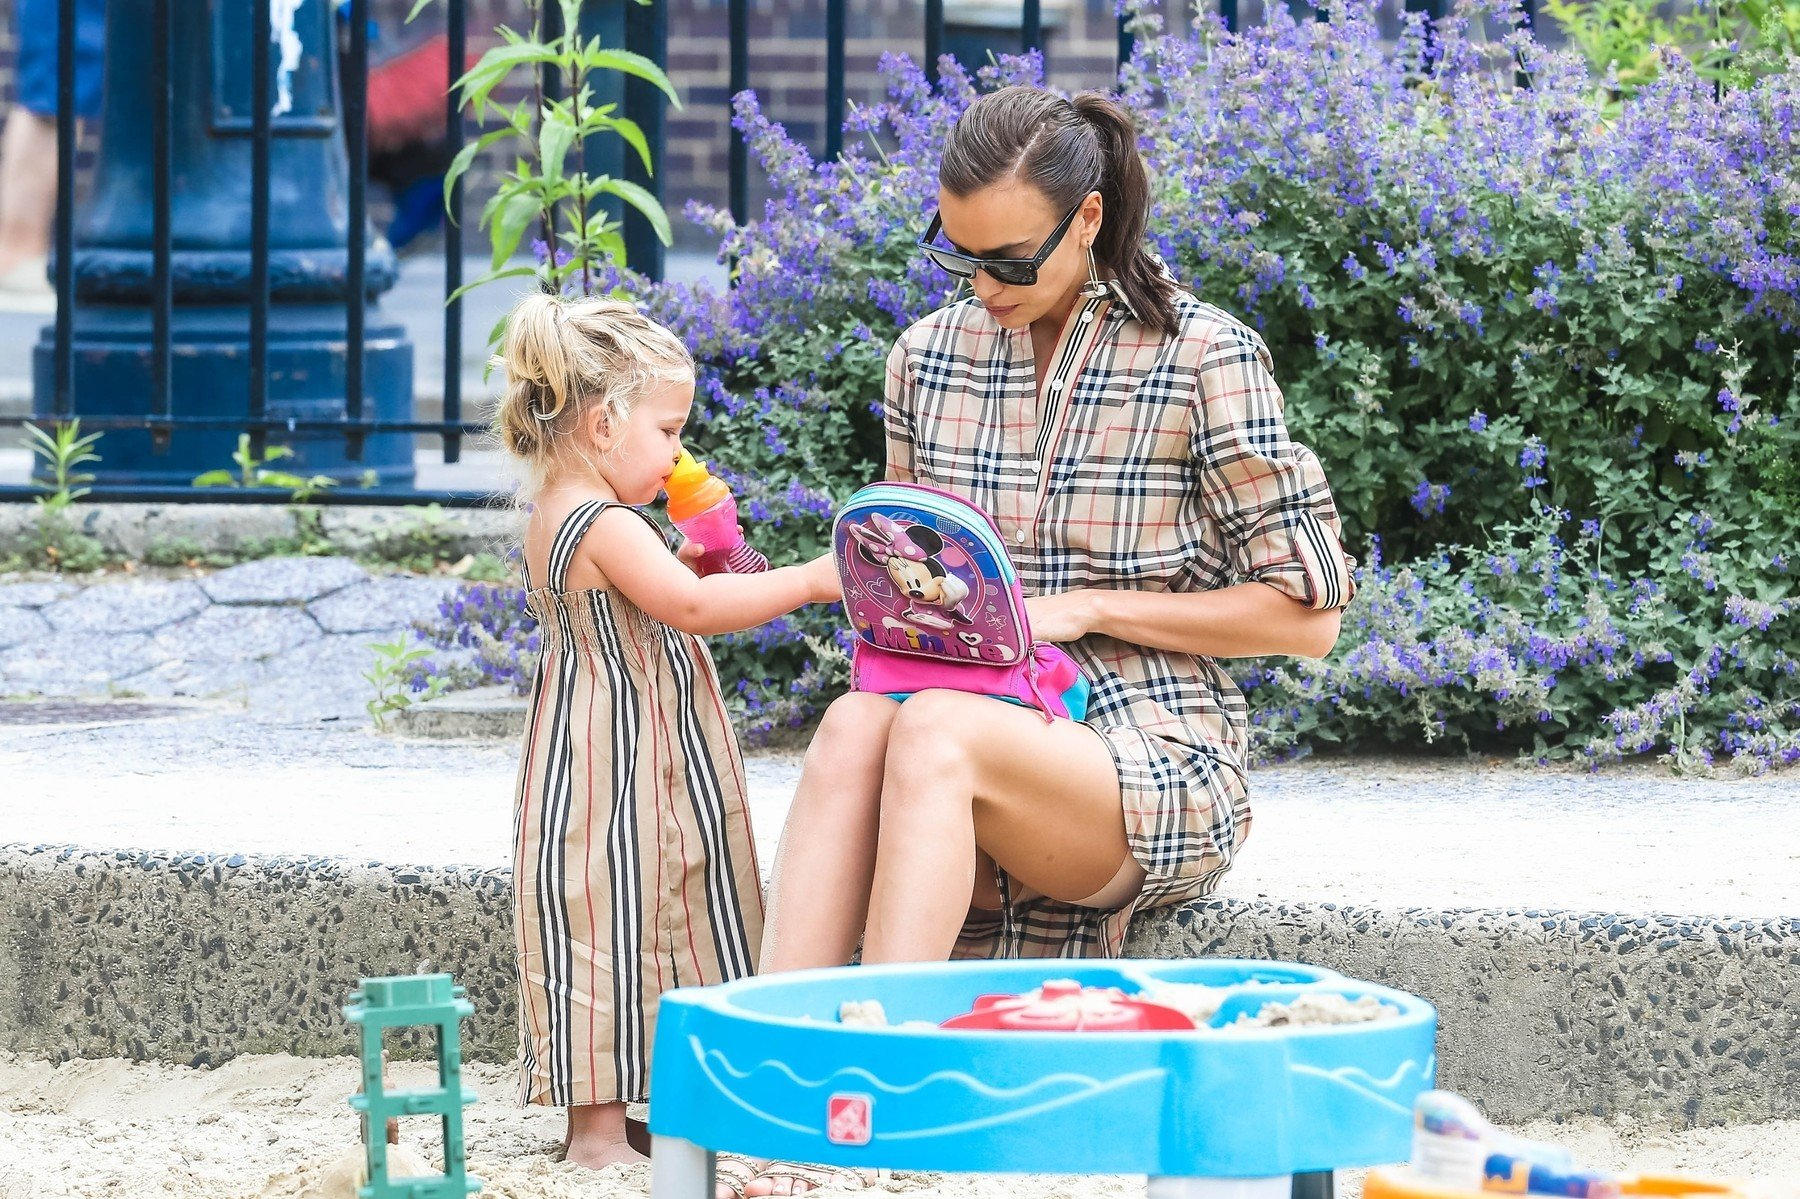 New York, NY  - Irina Shayk enjoys time with her daughter after breaking up with Bradley Cooper. The duo are seen enjoying their day at the park together.  *UK Clients - Pictures Containing Children Please Pixelate Face Prior To Publication*, Image: 448732825, License: Rights-managed, Restrictions: , Model Release: no, Credit line: Profimedia, Backgrid USA